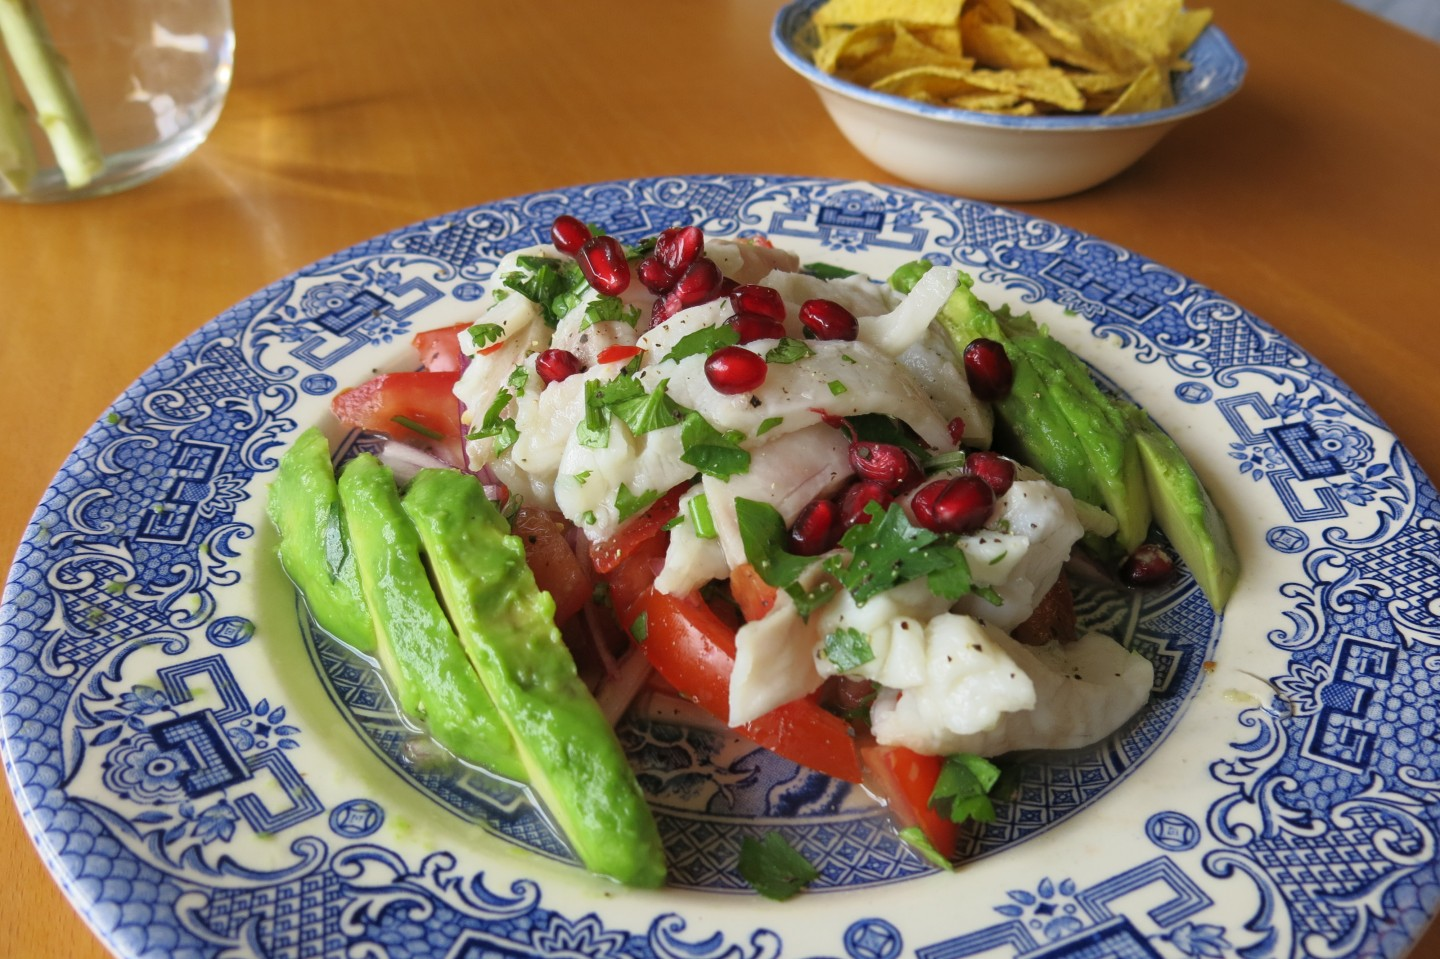 Sea bass ceviche recipe